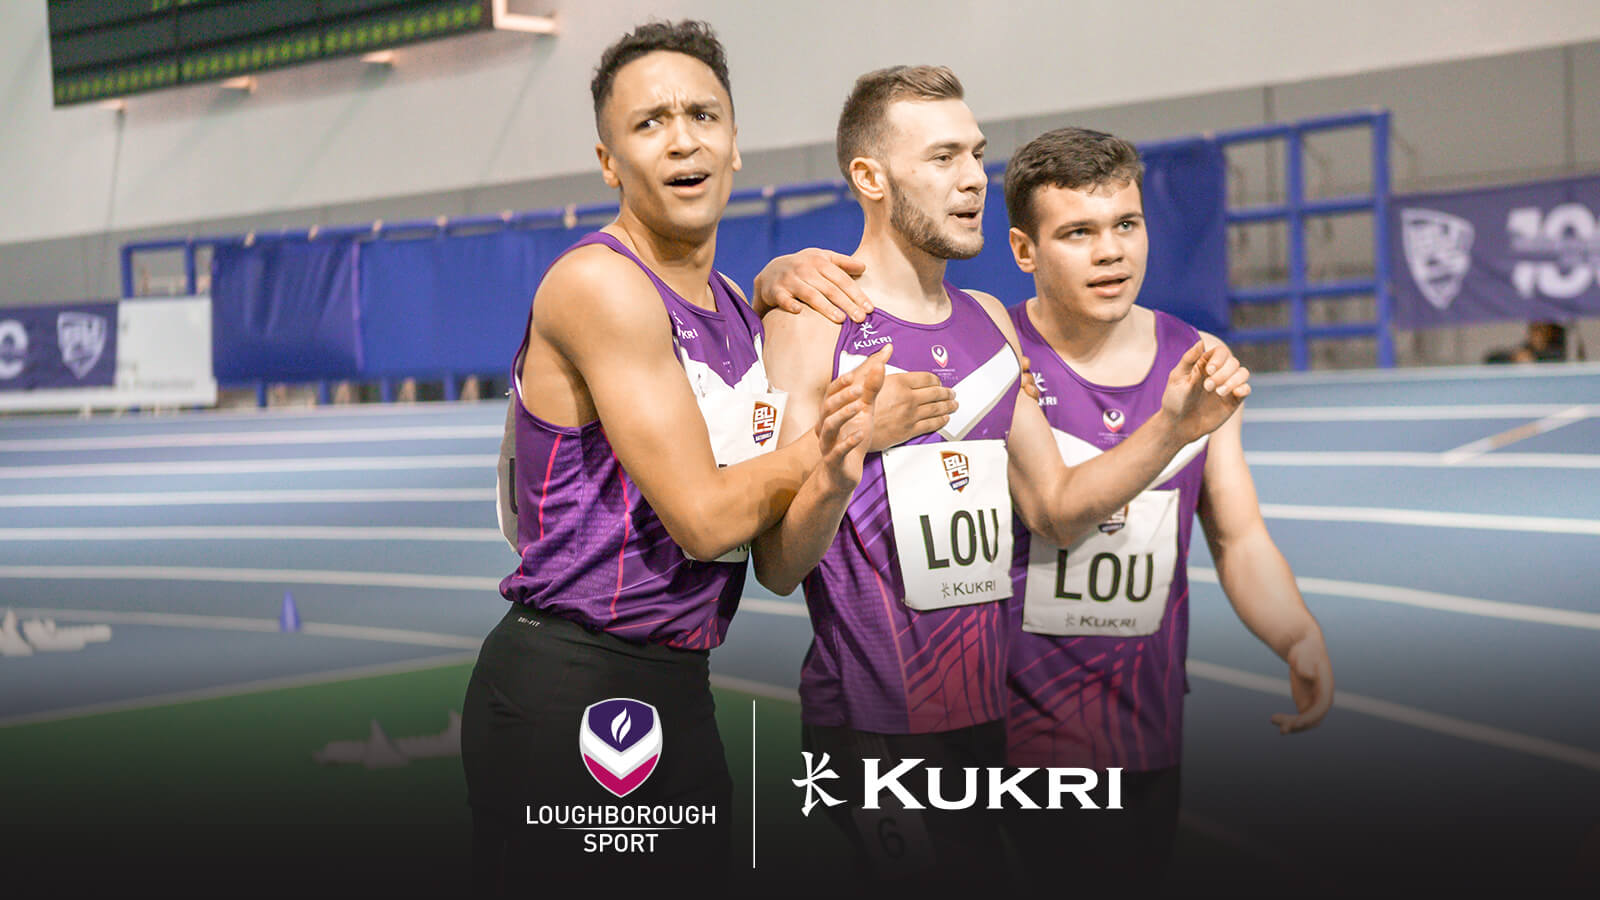 Loughborough